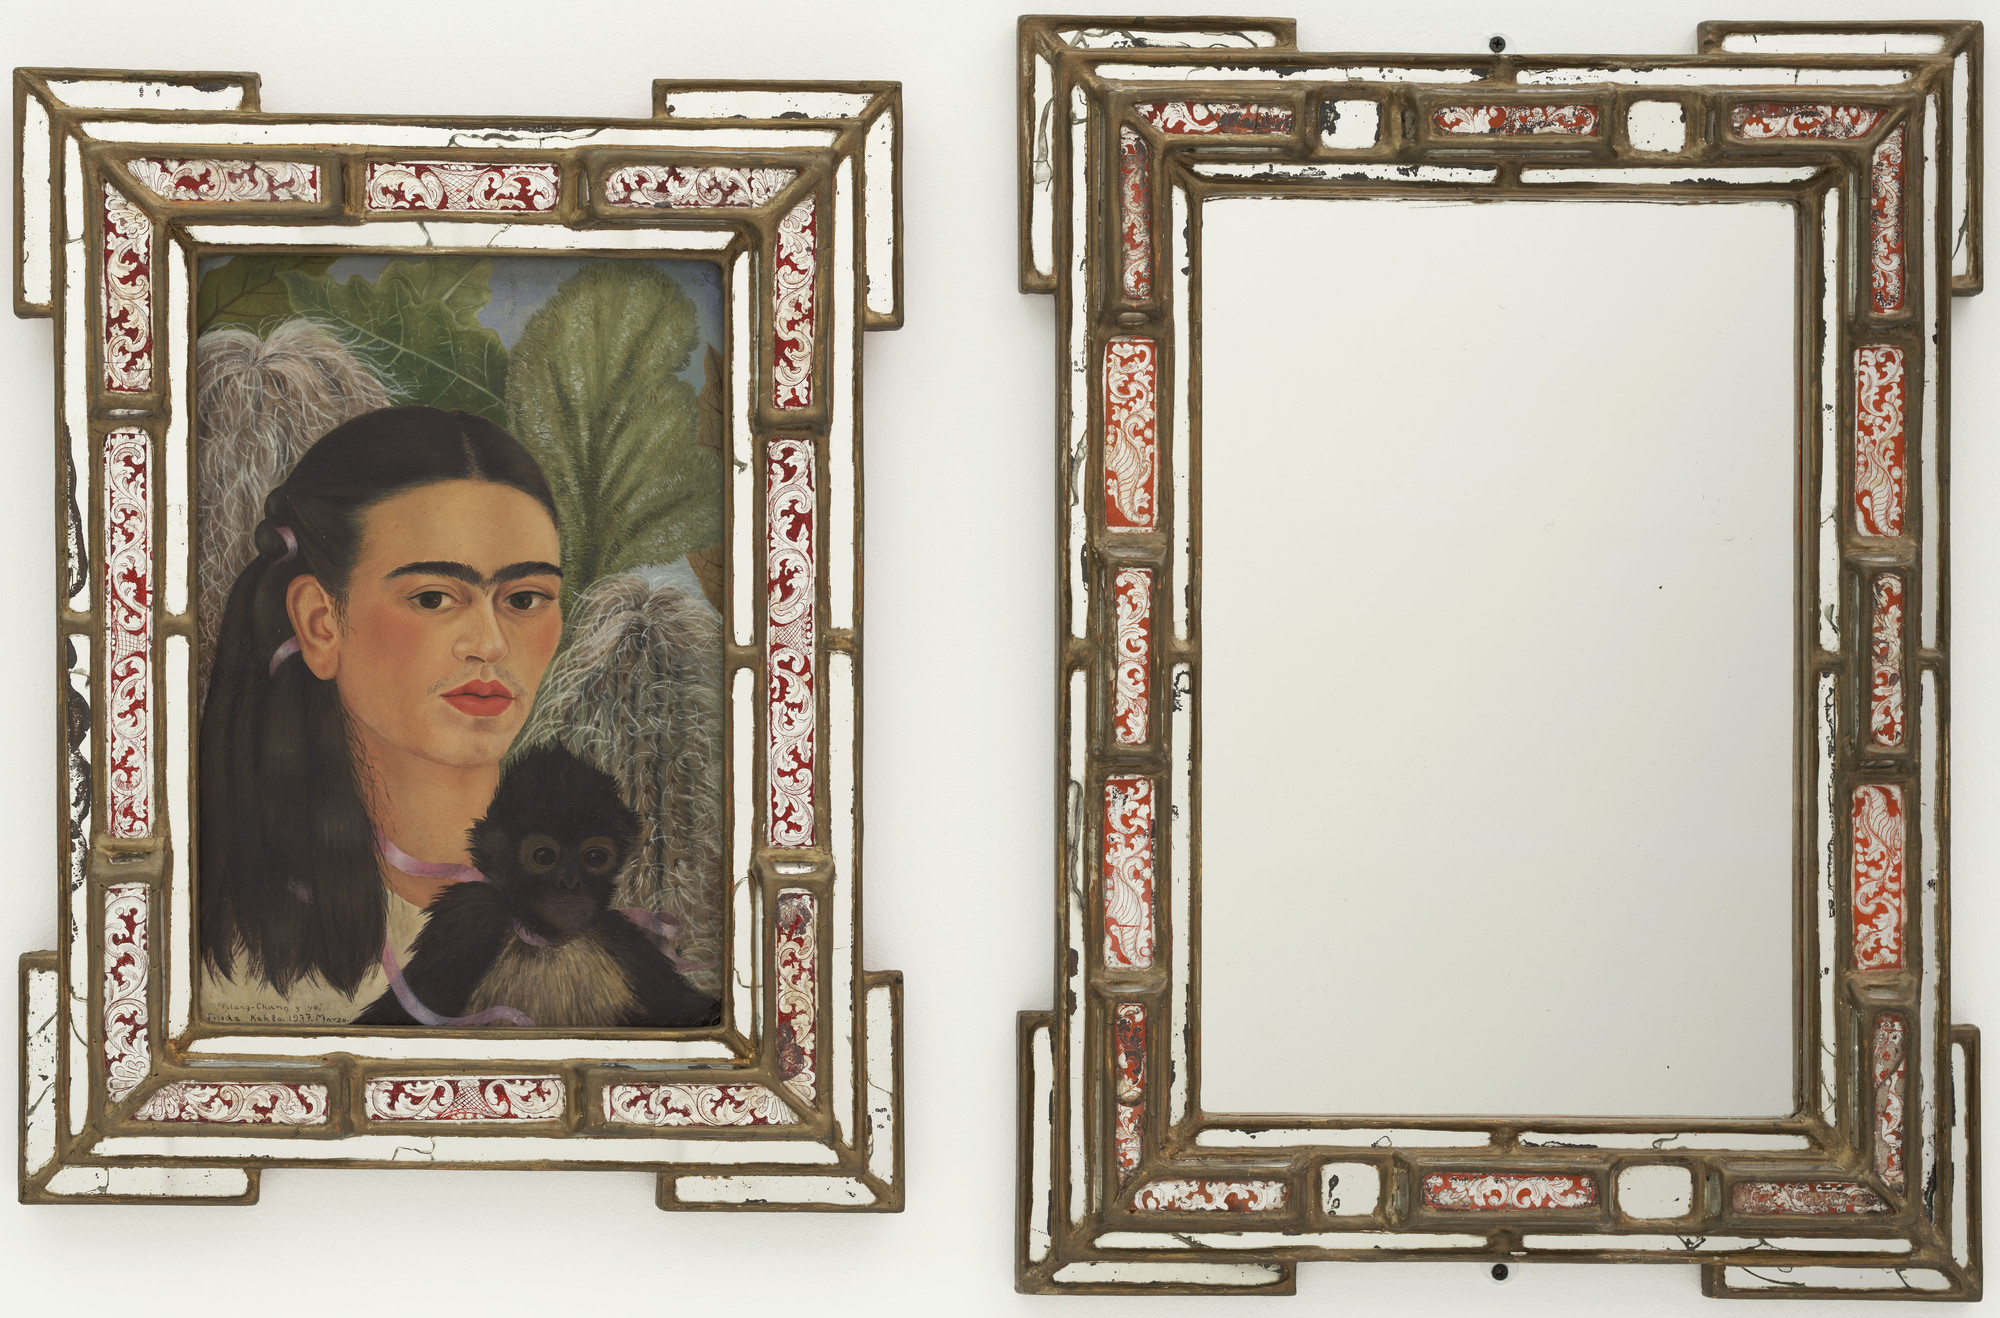 Frida Kahlo. Fulang-Chang and I. 1937 (assembled after 1939)